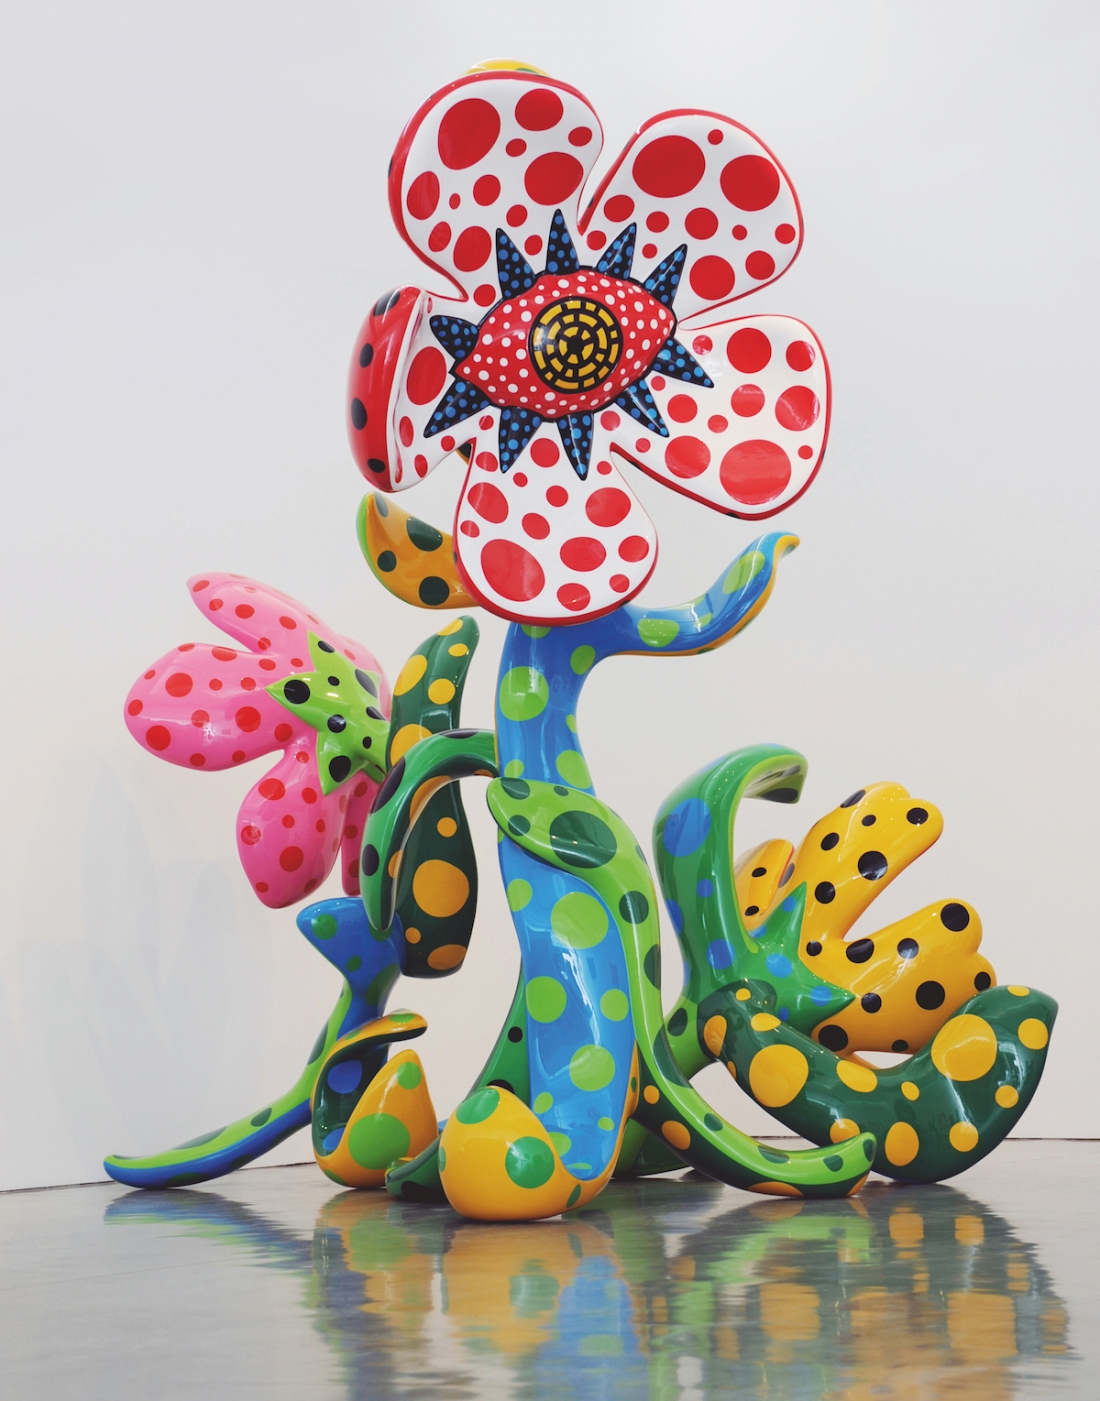 Yayoi Kusama, Flowers That Bloom at Midnight, 2009, FRP, steel structure, urethane paint, 485 x 200 x 203 cm, 300 x 175 x 210 cm, 215 x 210 x 130 cm. Picture credit: artwork © Yayoi Kusama (page 186)